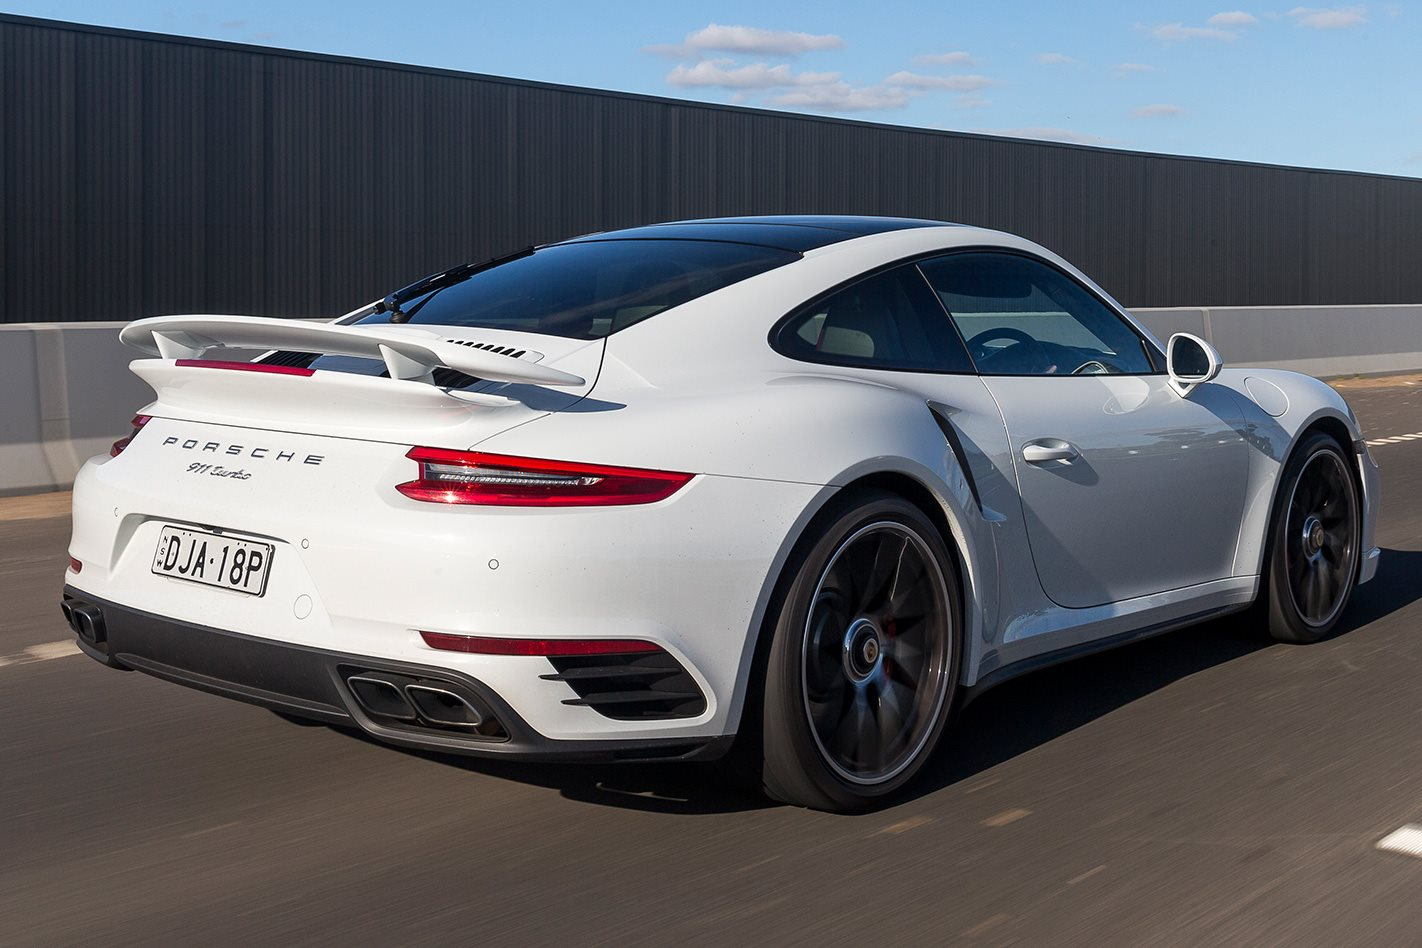 2017 Porsche 991.2 911 Turbo rear